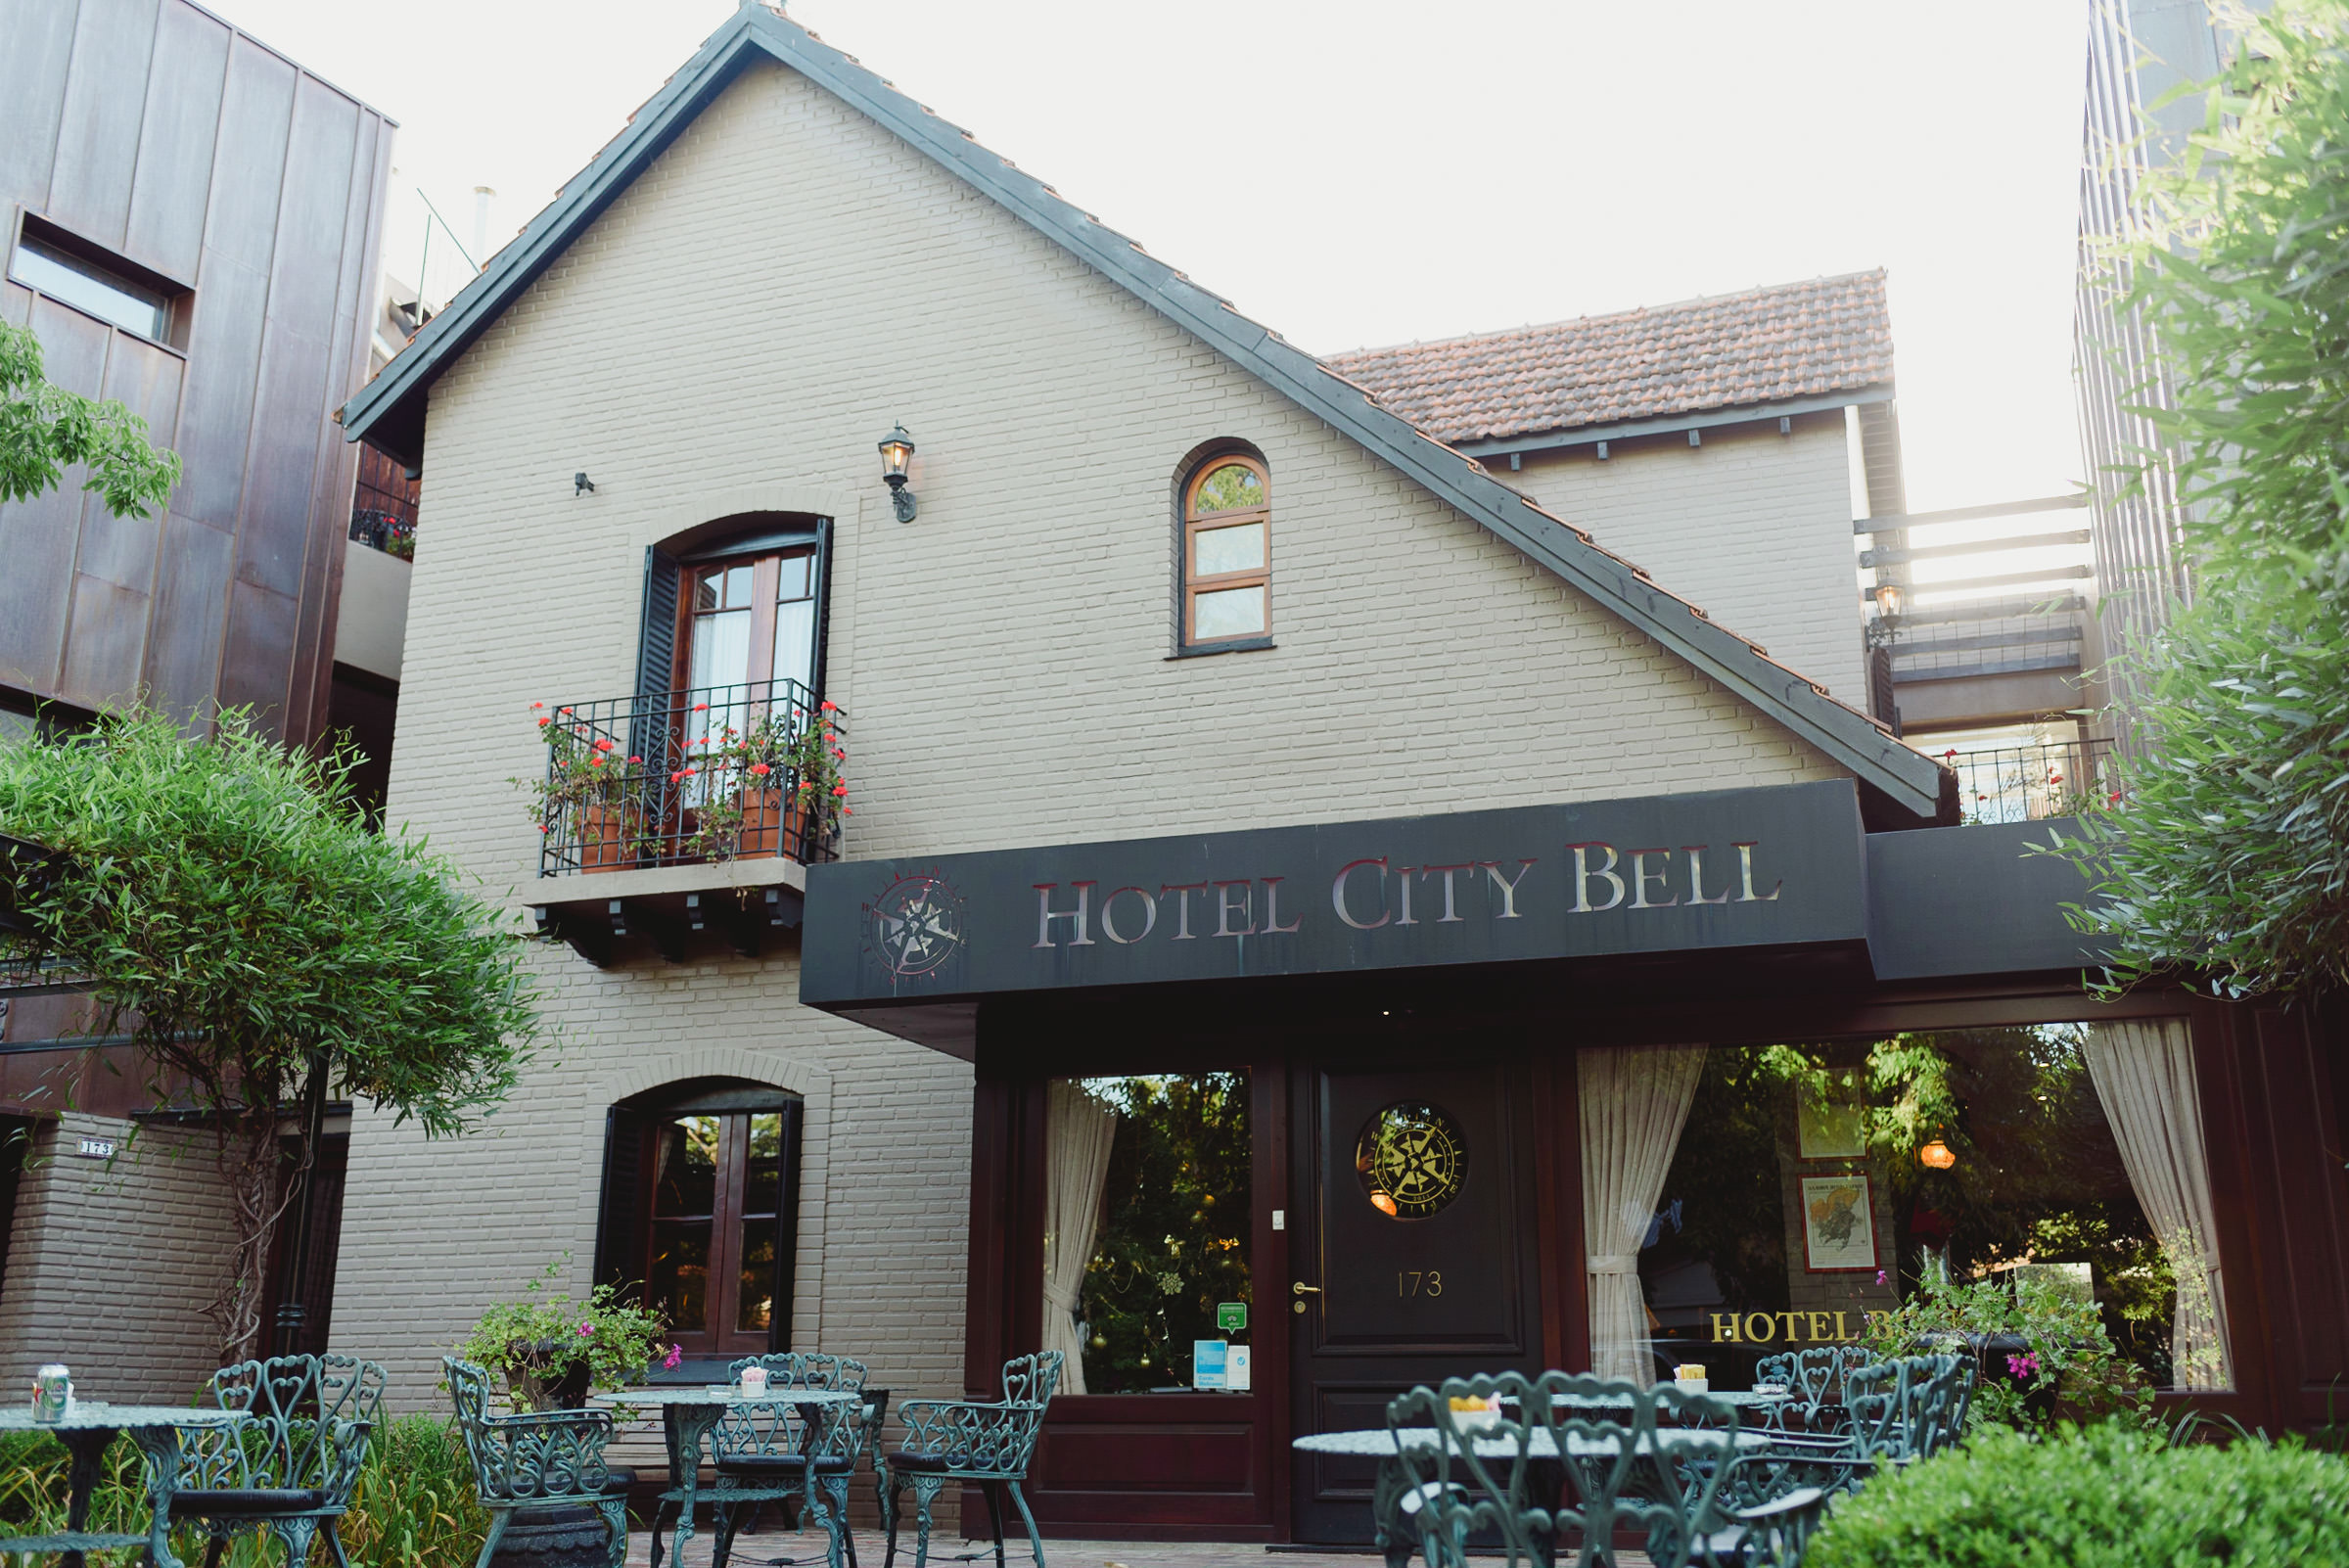 Hotel boutique city bell 01.JPG